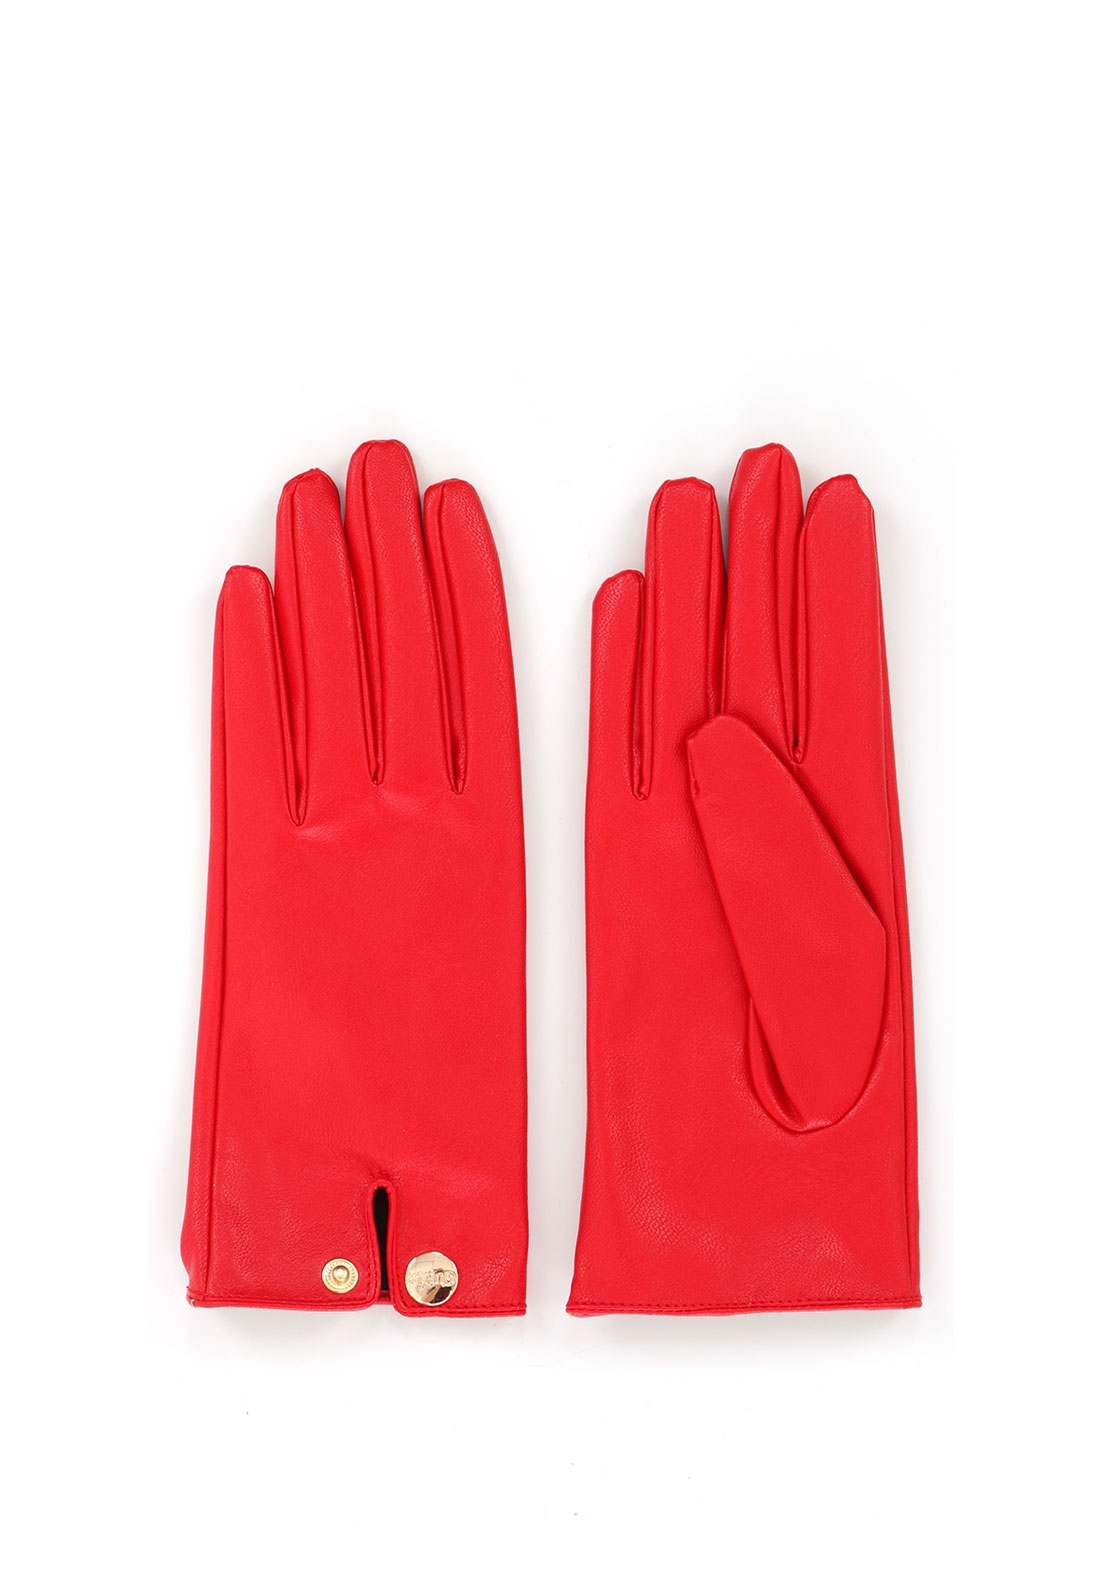 Guess Faux Leather Gloves, Red